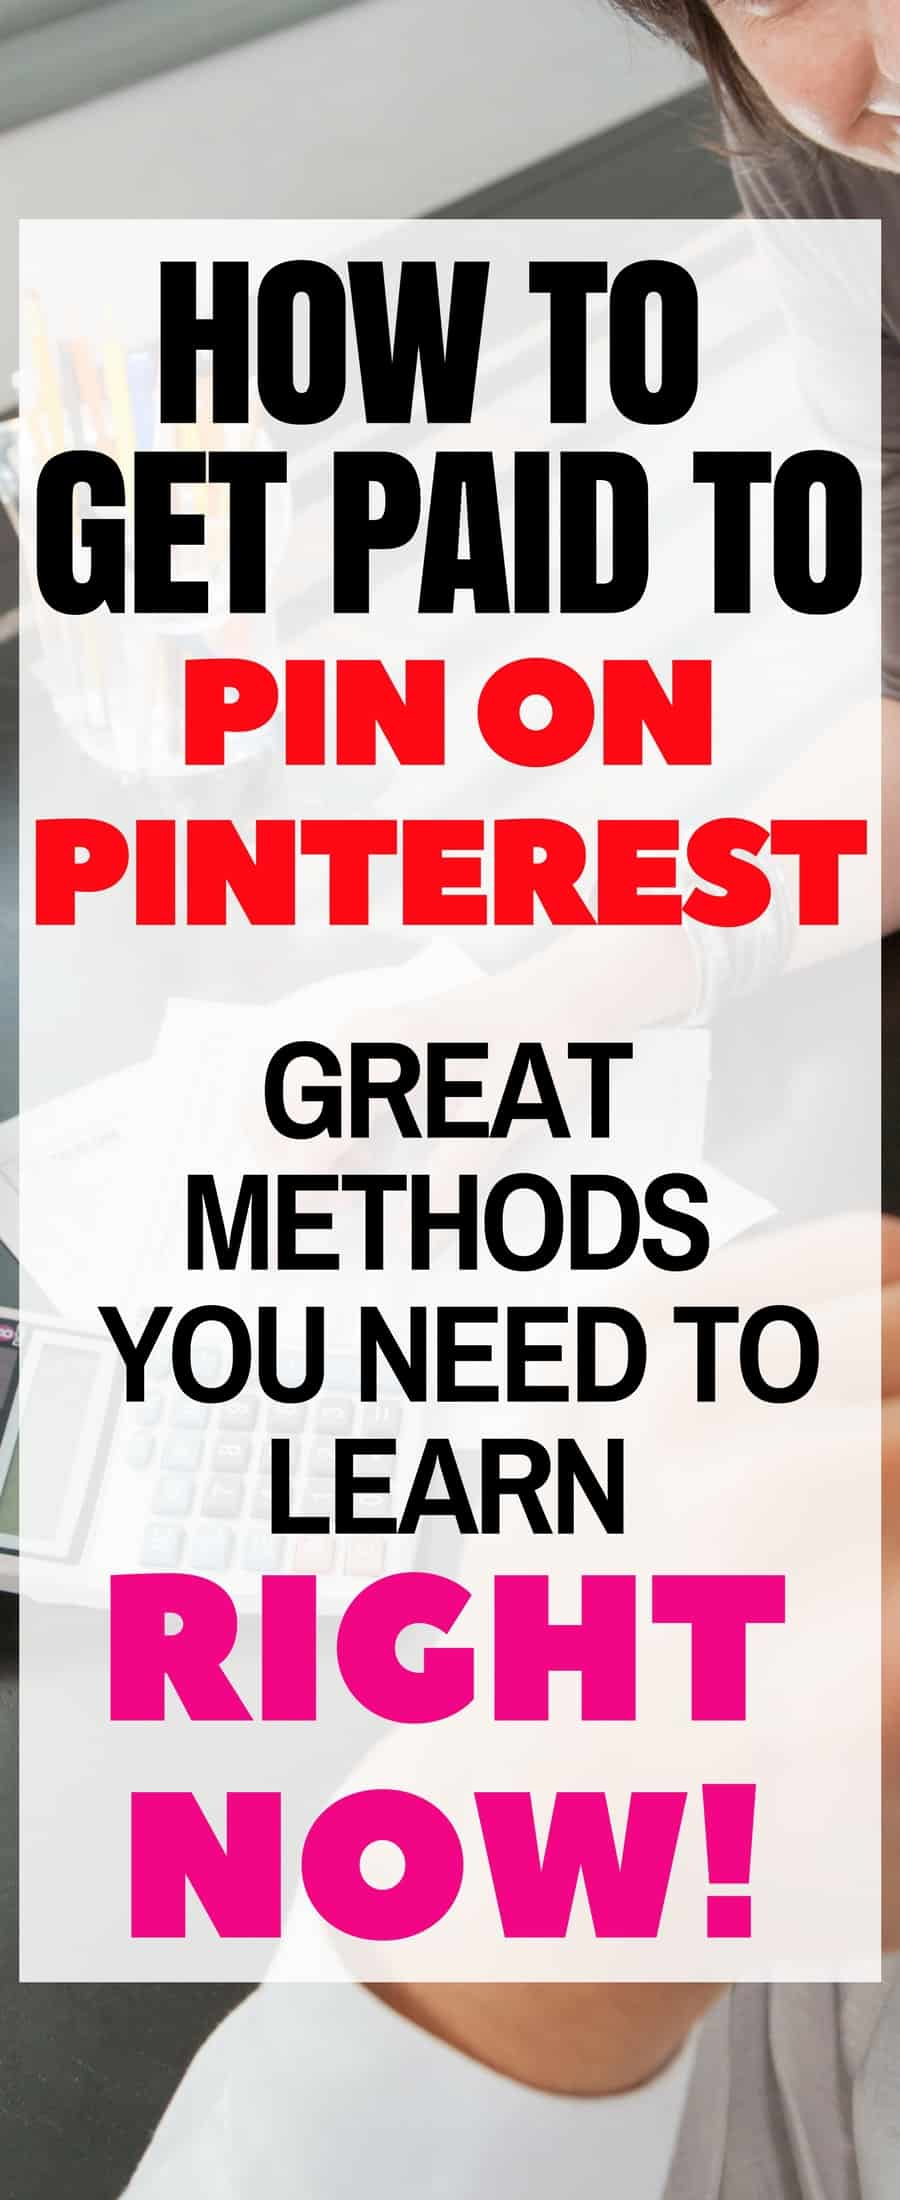 How to make money on Pinterest  Real ways to make money online using Pinterest, affiliate marketing, display ads, etsy, shopify, amazon associates and so much more Learn of real ways to make money from home using Pinterest